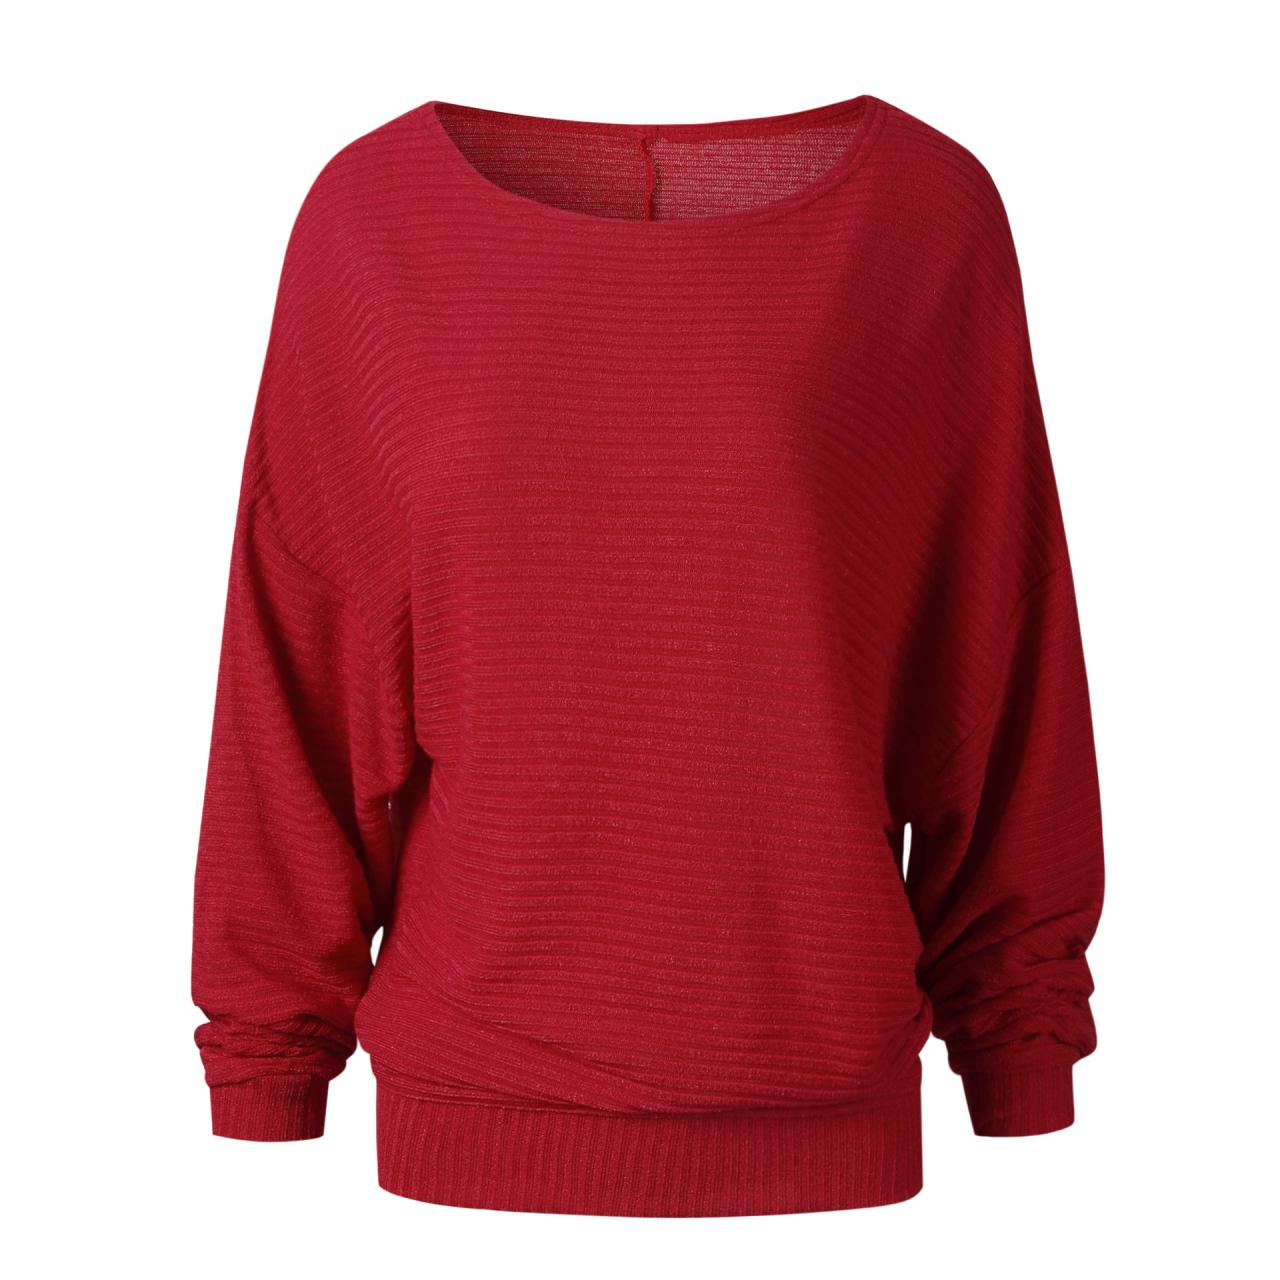 Women Knitted Sweater Spring Autumn Bat Long Sleeve Loose Oversized Pullover Tops red